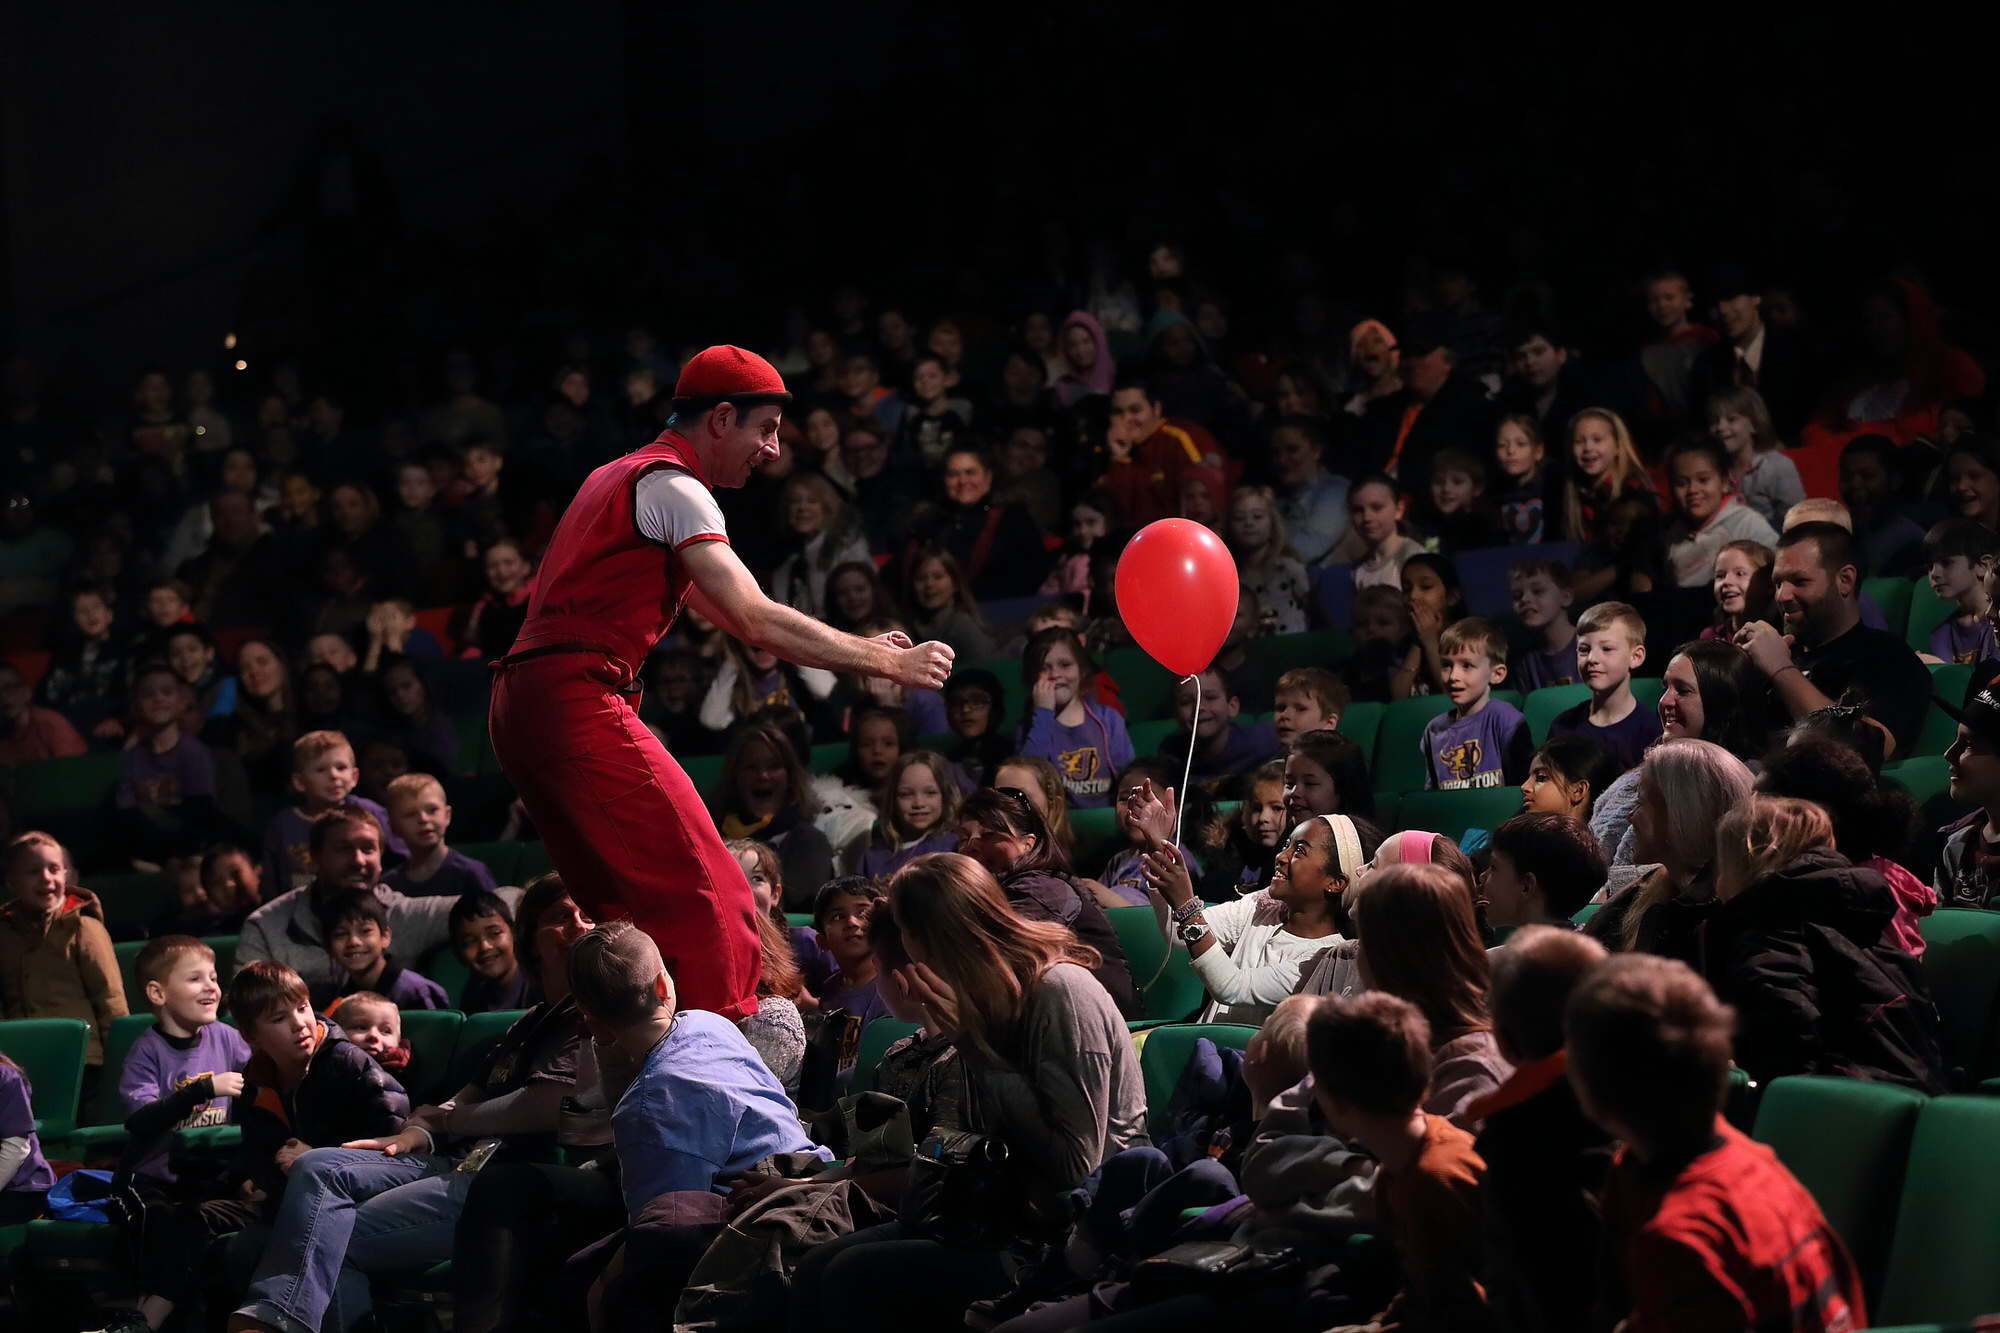 acrobuffos_airplayshow-des_moines-seth_bloom-in-audience-with-balloon.JPG